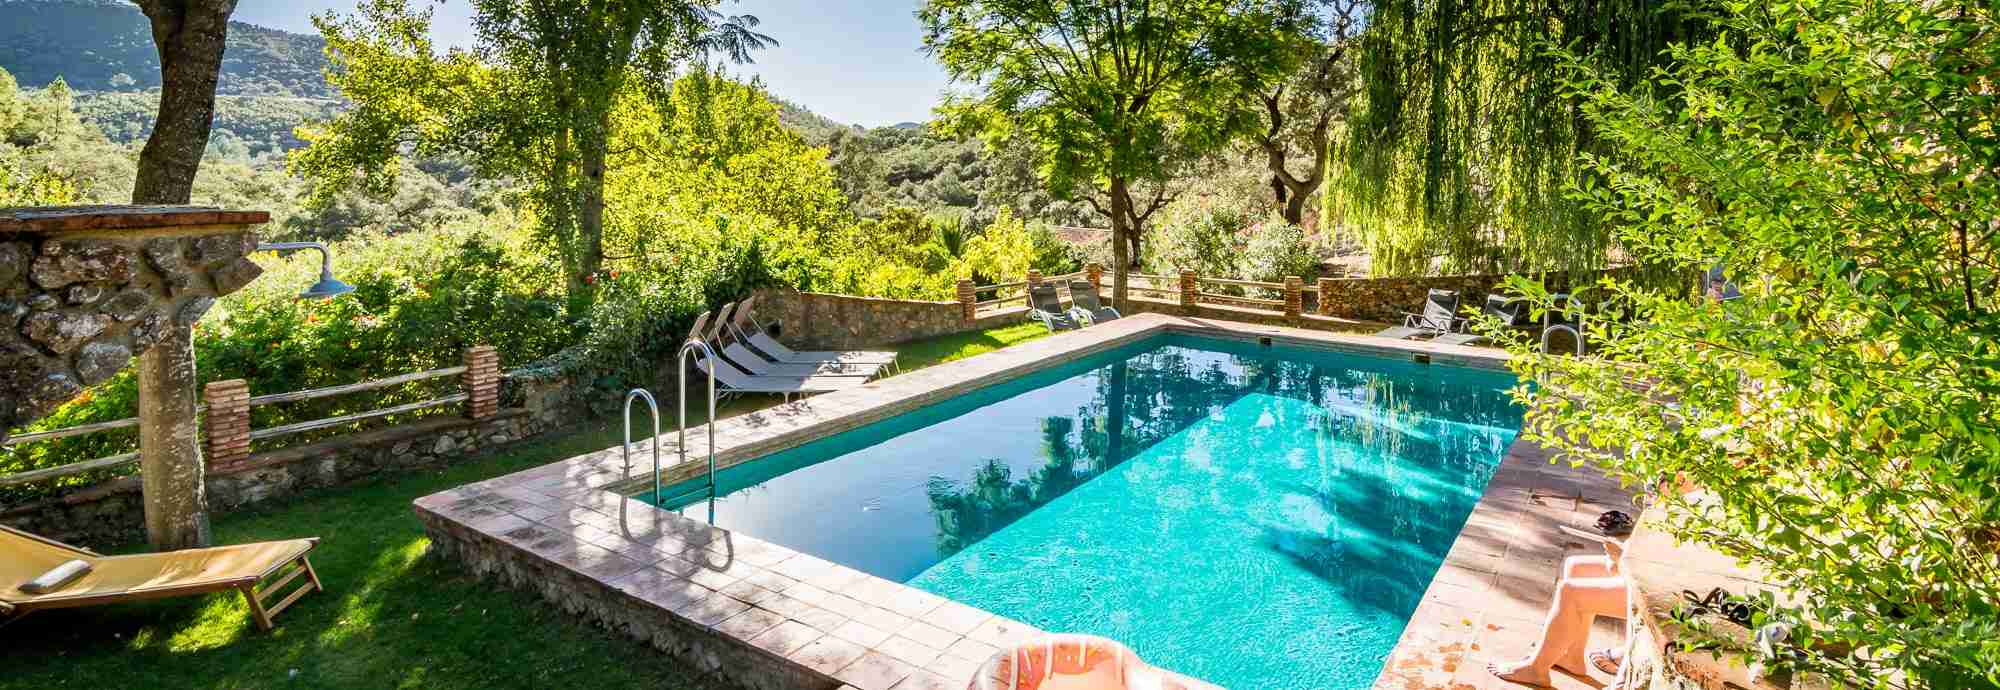 A cottage for two in lovely Andalucia estate with tennis and pool